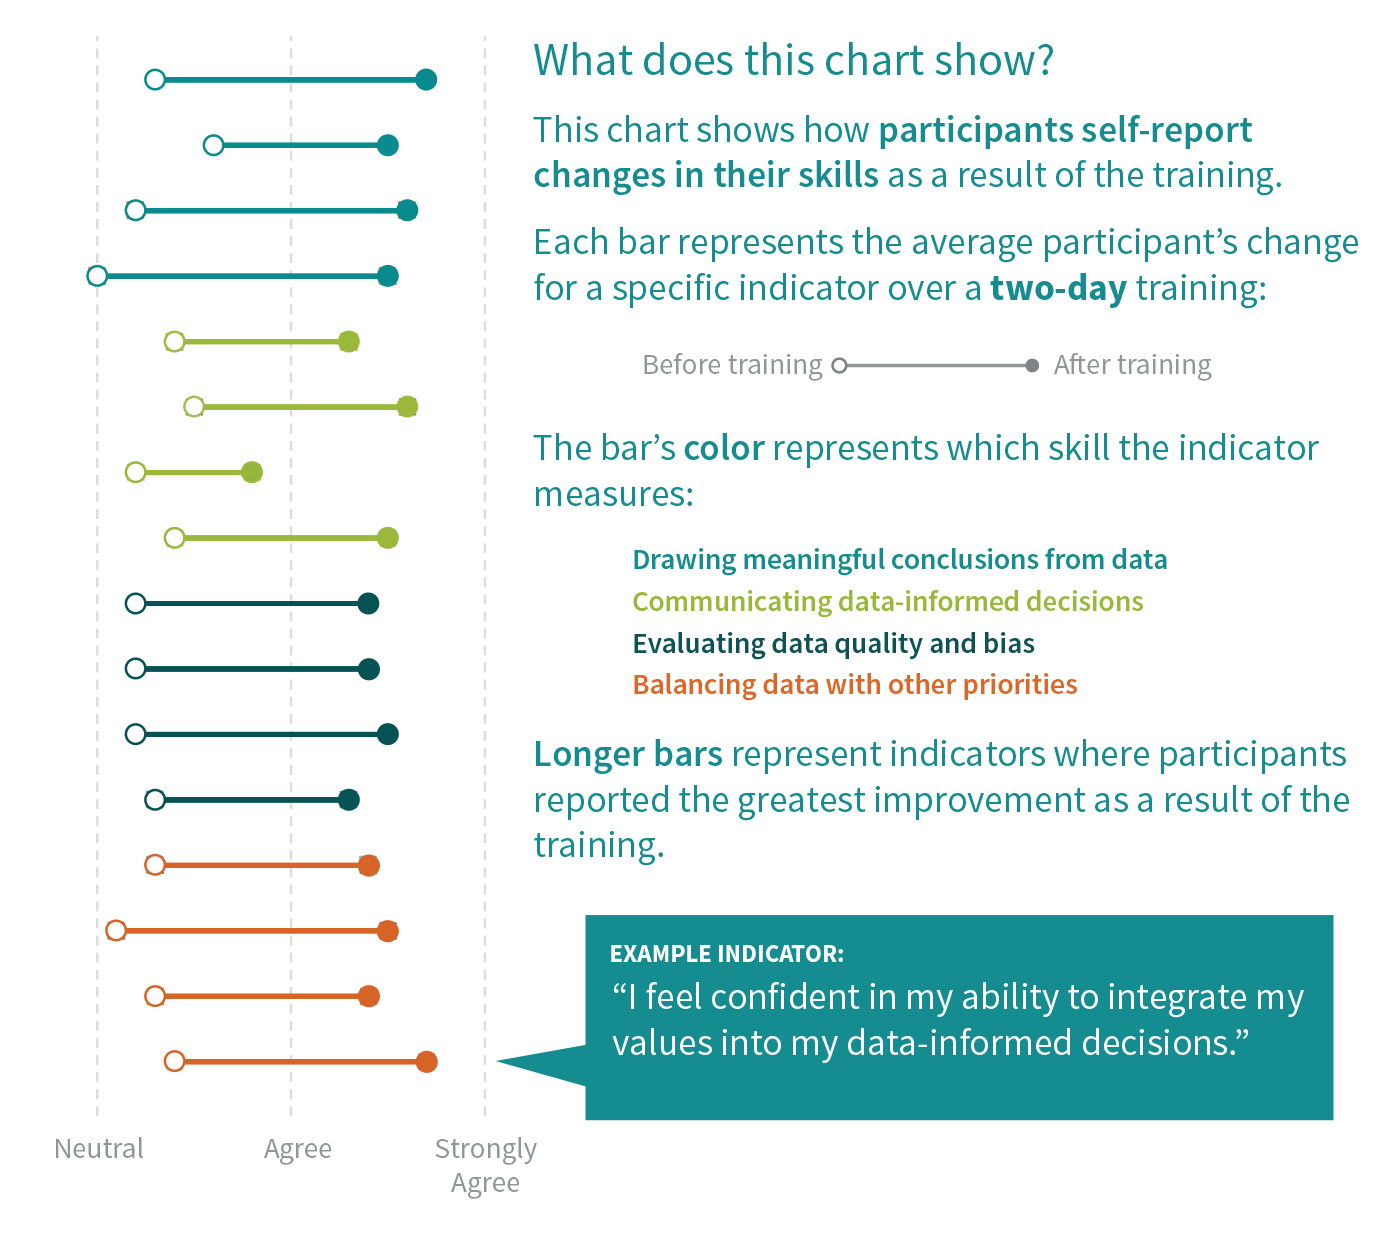 This chart shows how participants self-report changes in their skills as a result of the training. The bars represent the average participant's change for a specific indicator over a two-day training. The indicators measure drawing meaningful conclusions from data, communicating data-informed decisions, evaluating data quality and bias, and balancing data with other priorities.